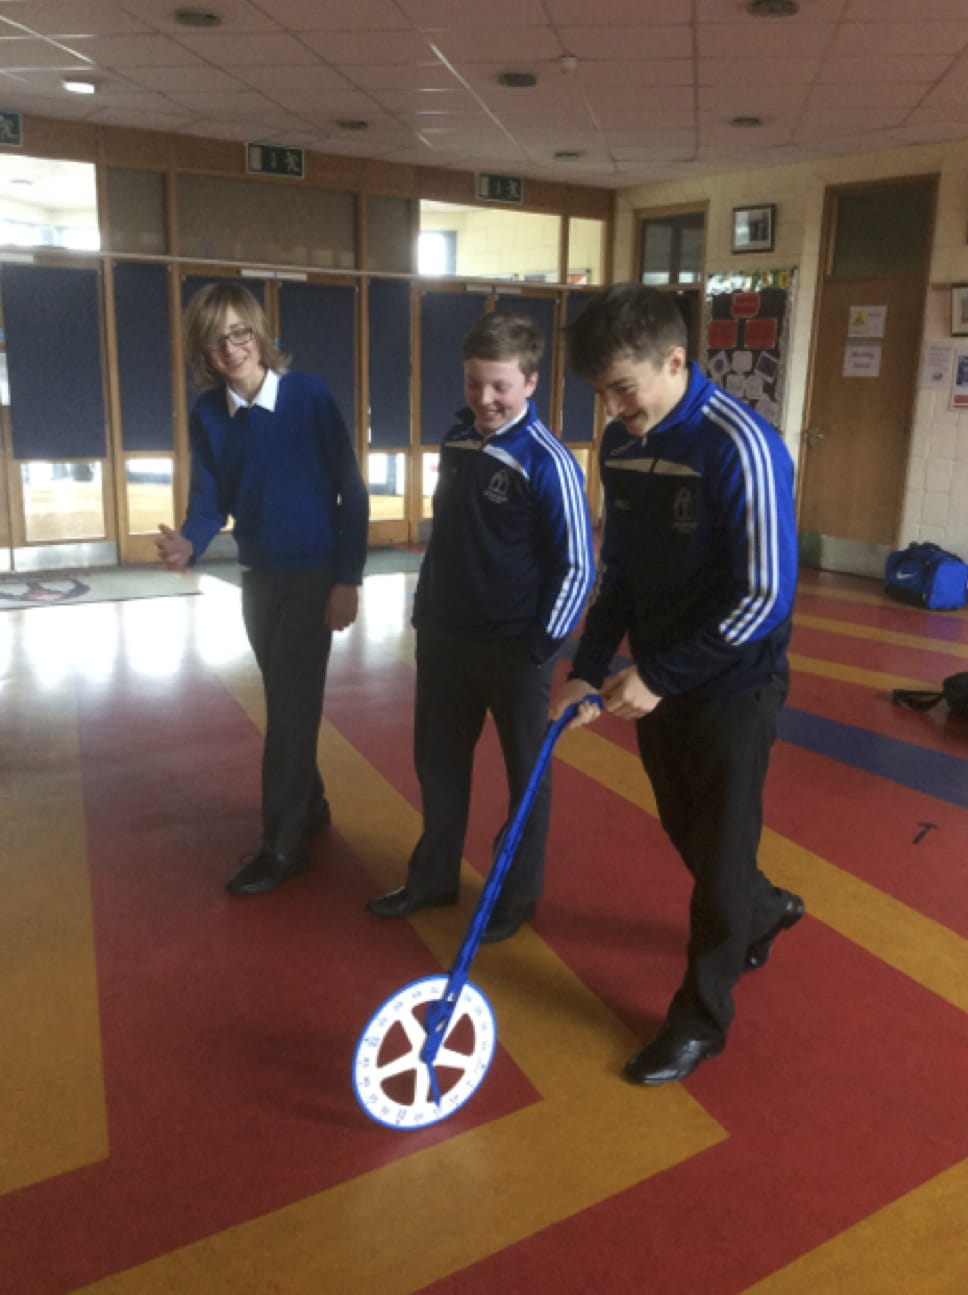 Jan 2017: Desmond College Students using the trundle wheel to-measure-the-area-of-the-school